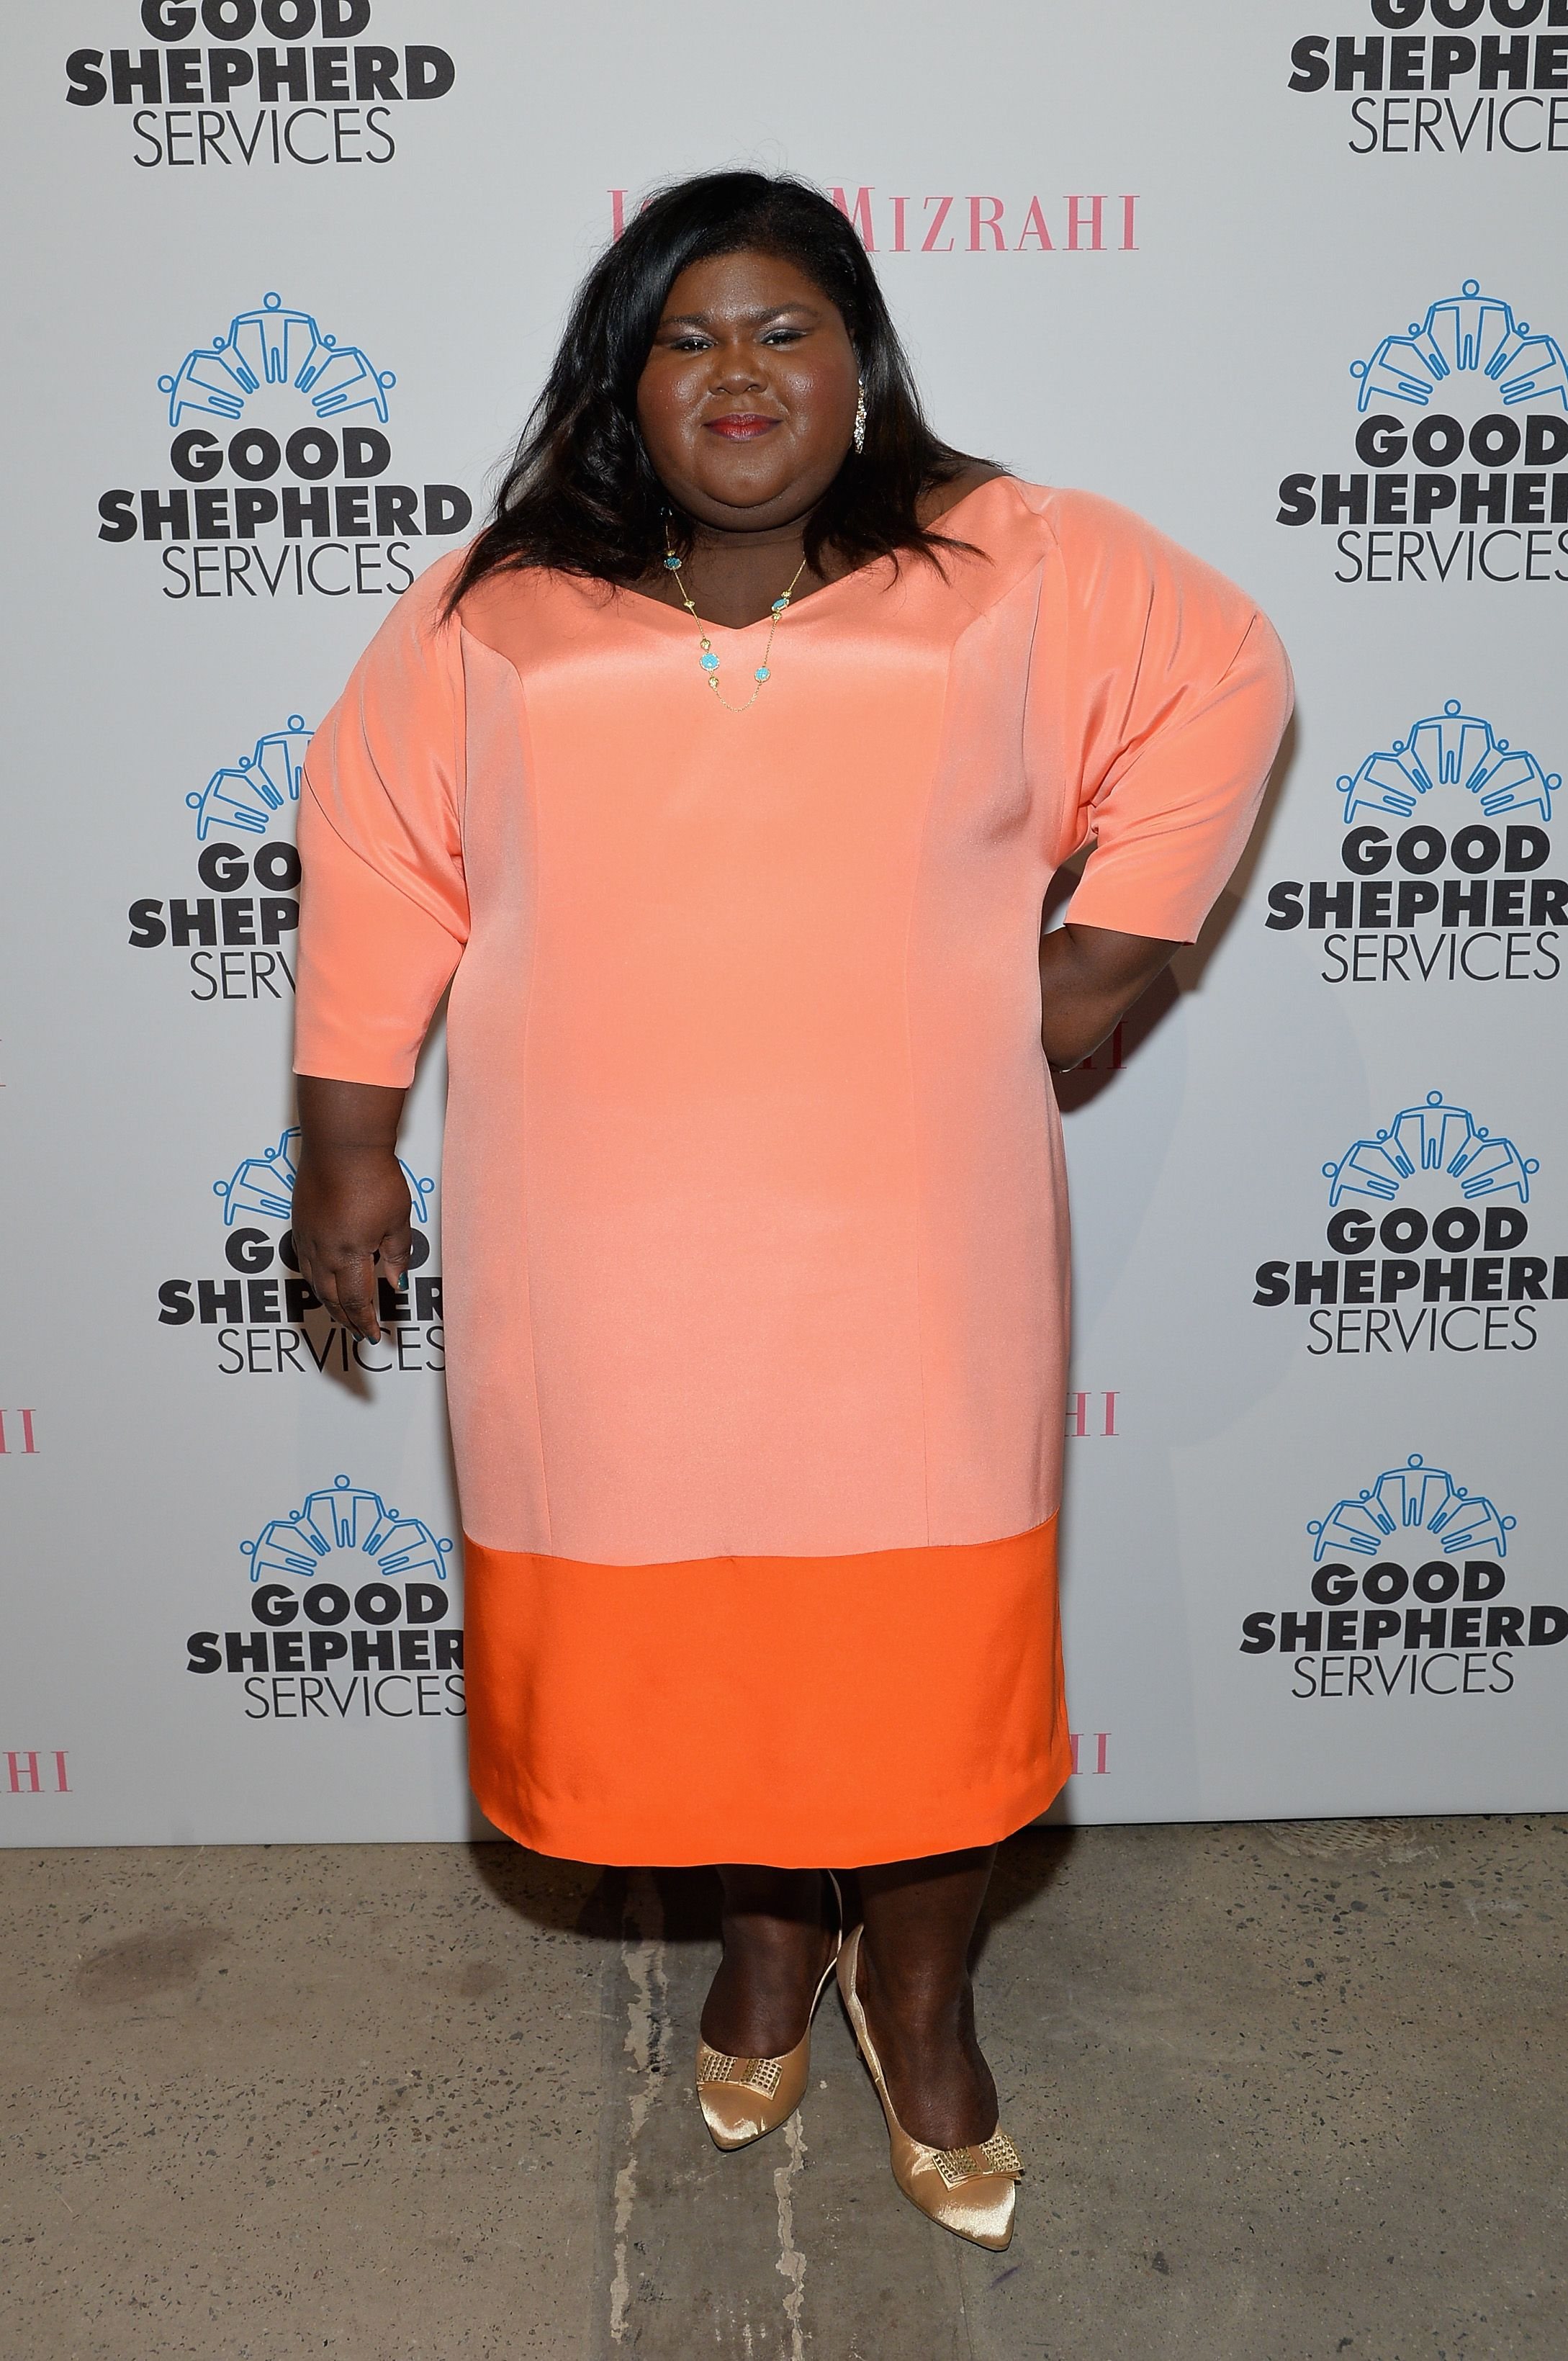 Gabourey Sidibe during the Good Shepherd Services Spring Party in New York City on April 24, 2014.   Source: Getty Images